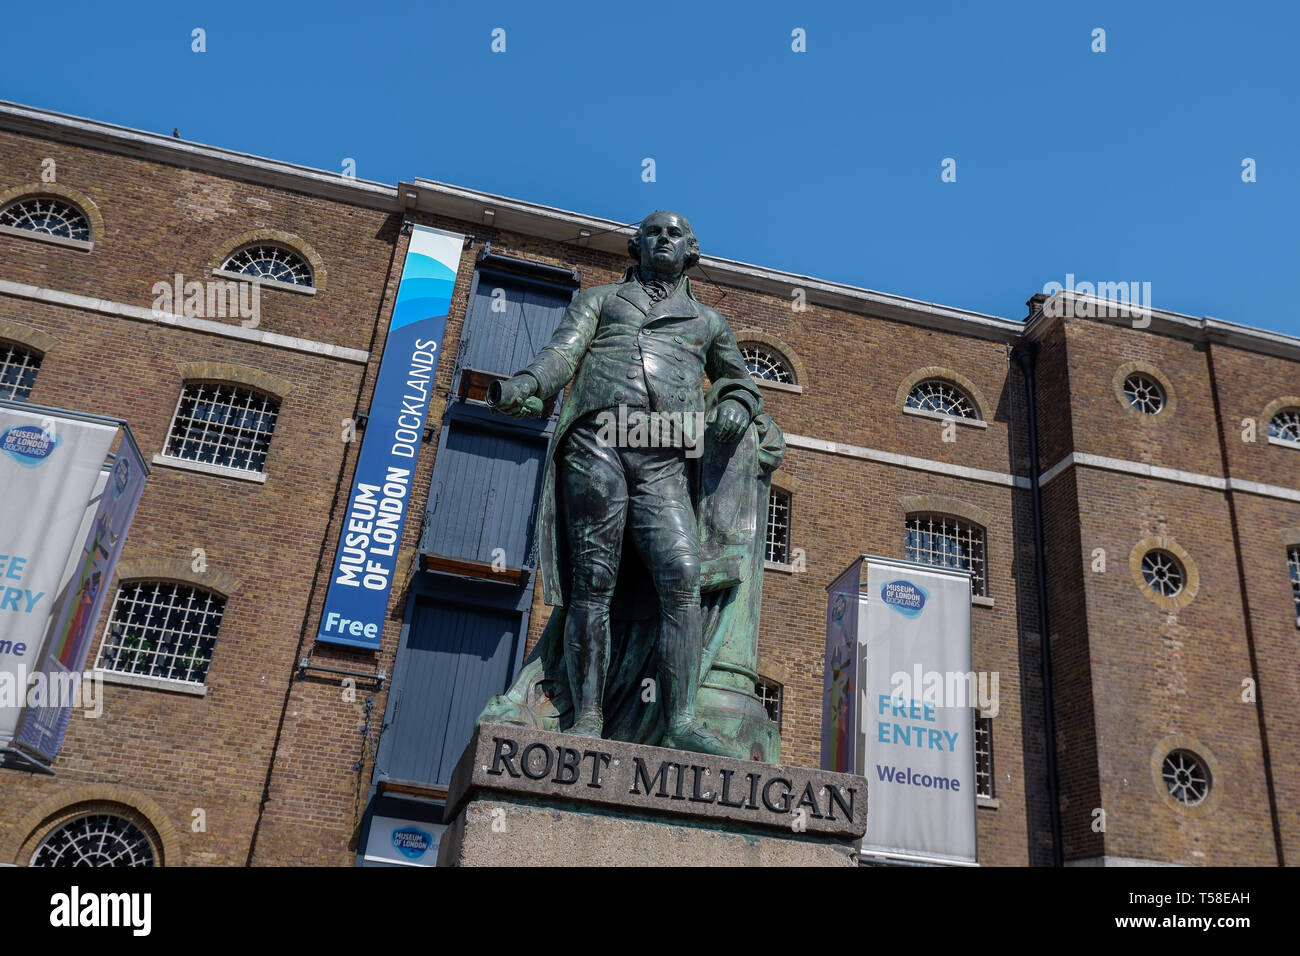 Statue of Robert Milligan, Museum of London, West India Docks at Canary Wharf Isle of Dogs London - Stock Image